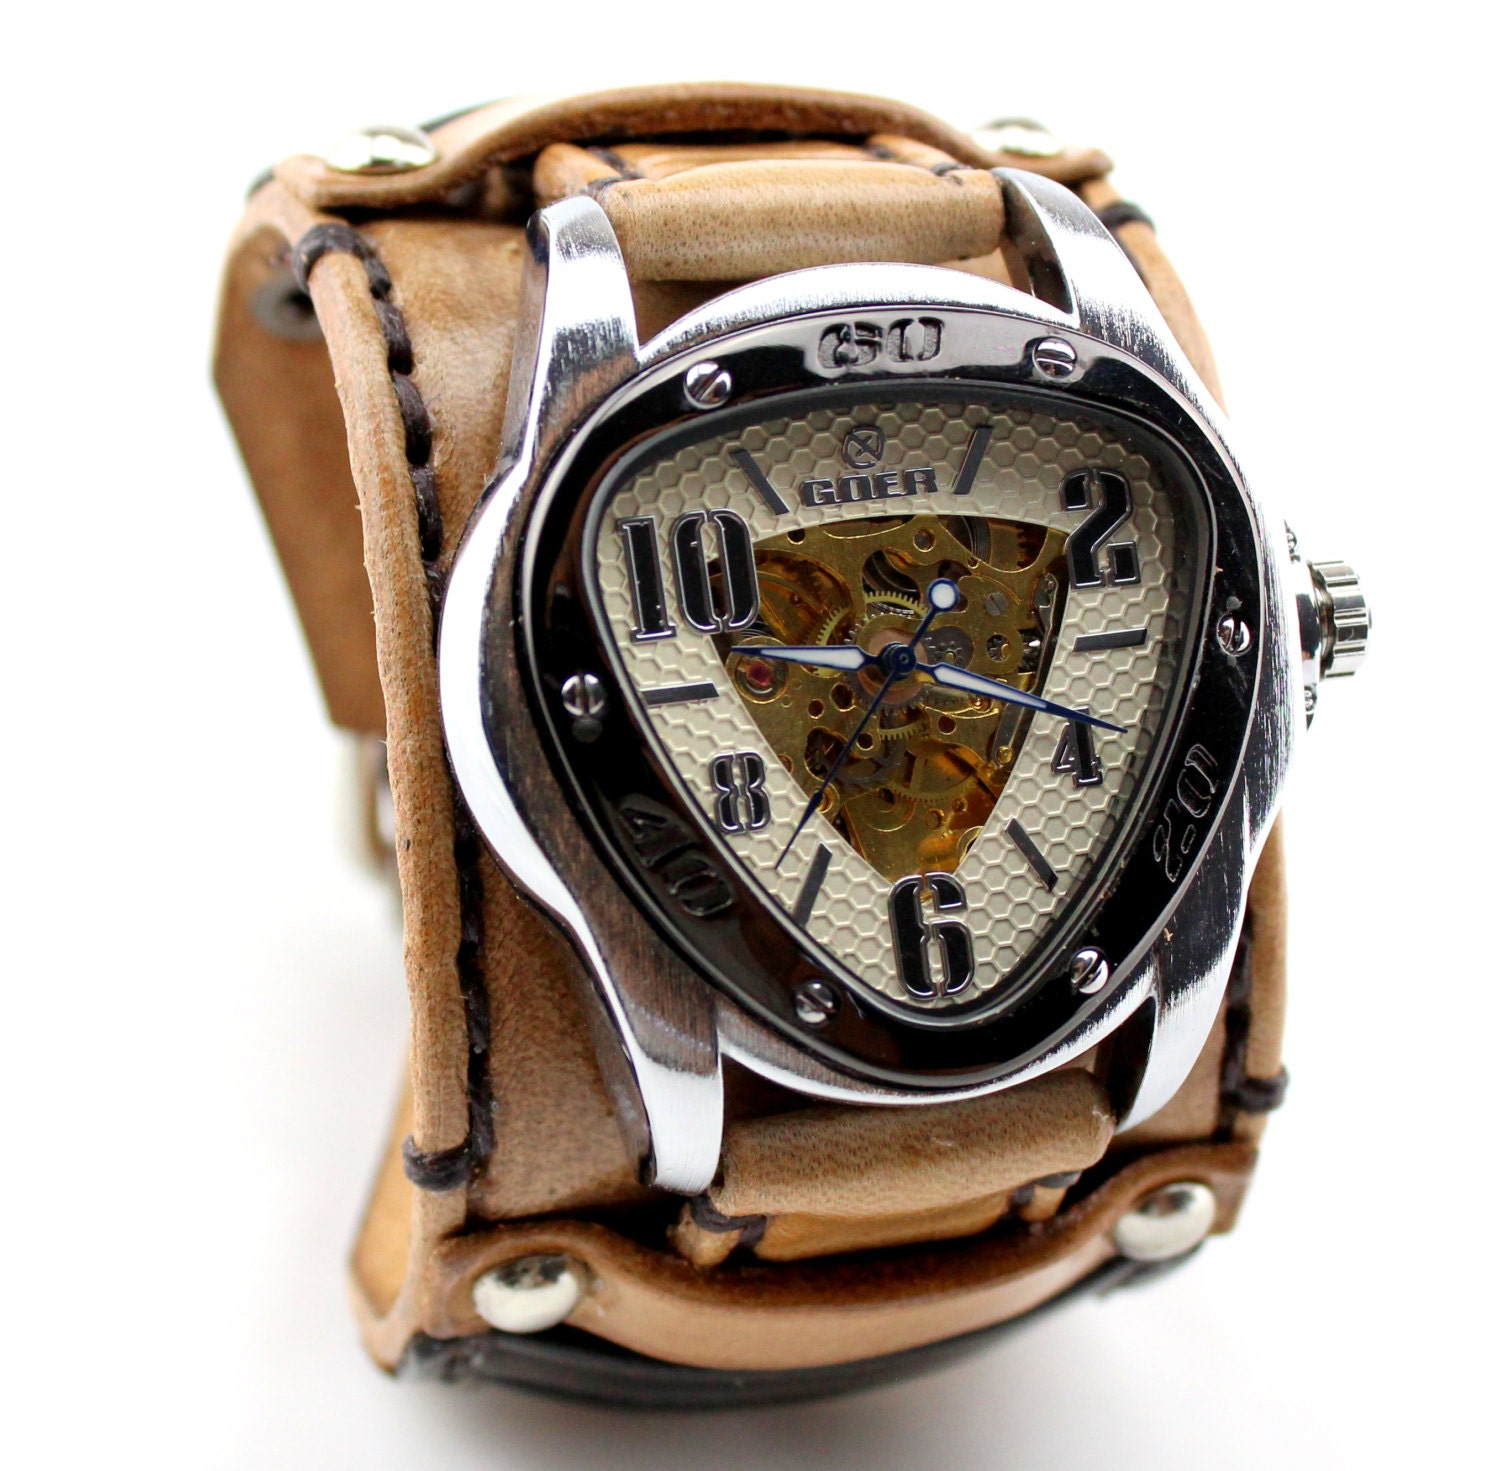 Personalized Mens Wrist Watch Gifts for Men Brown Leather |Wrist Watch For Men Leather